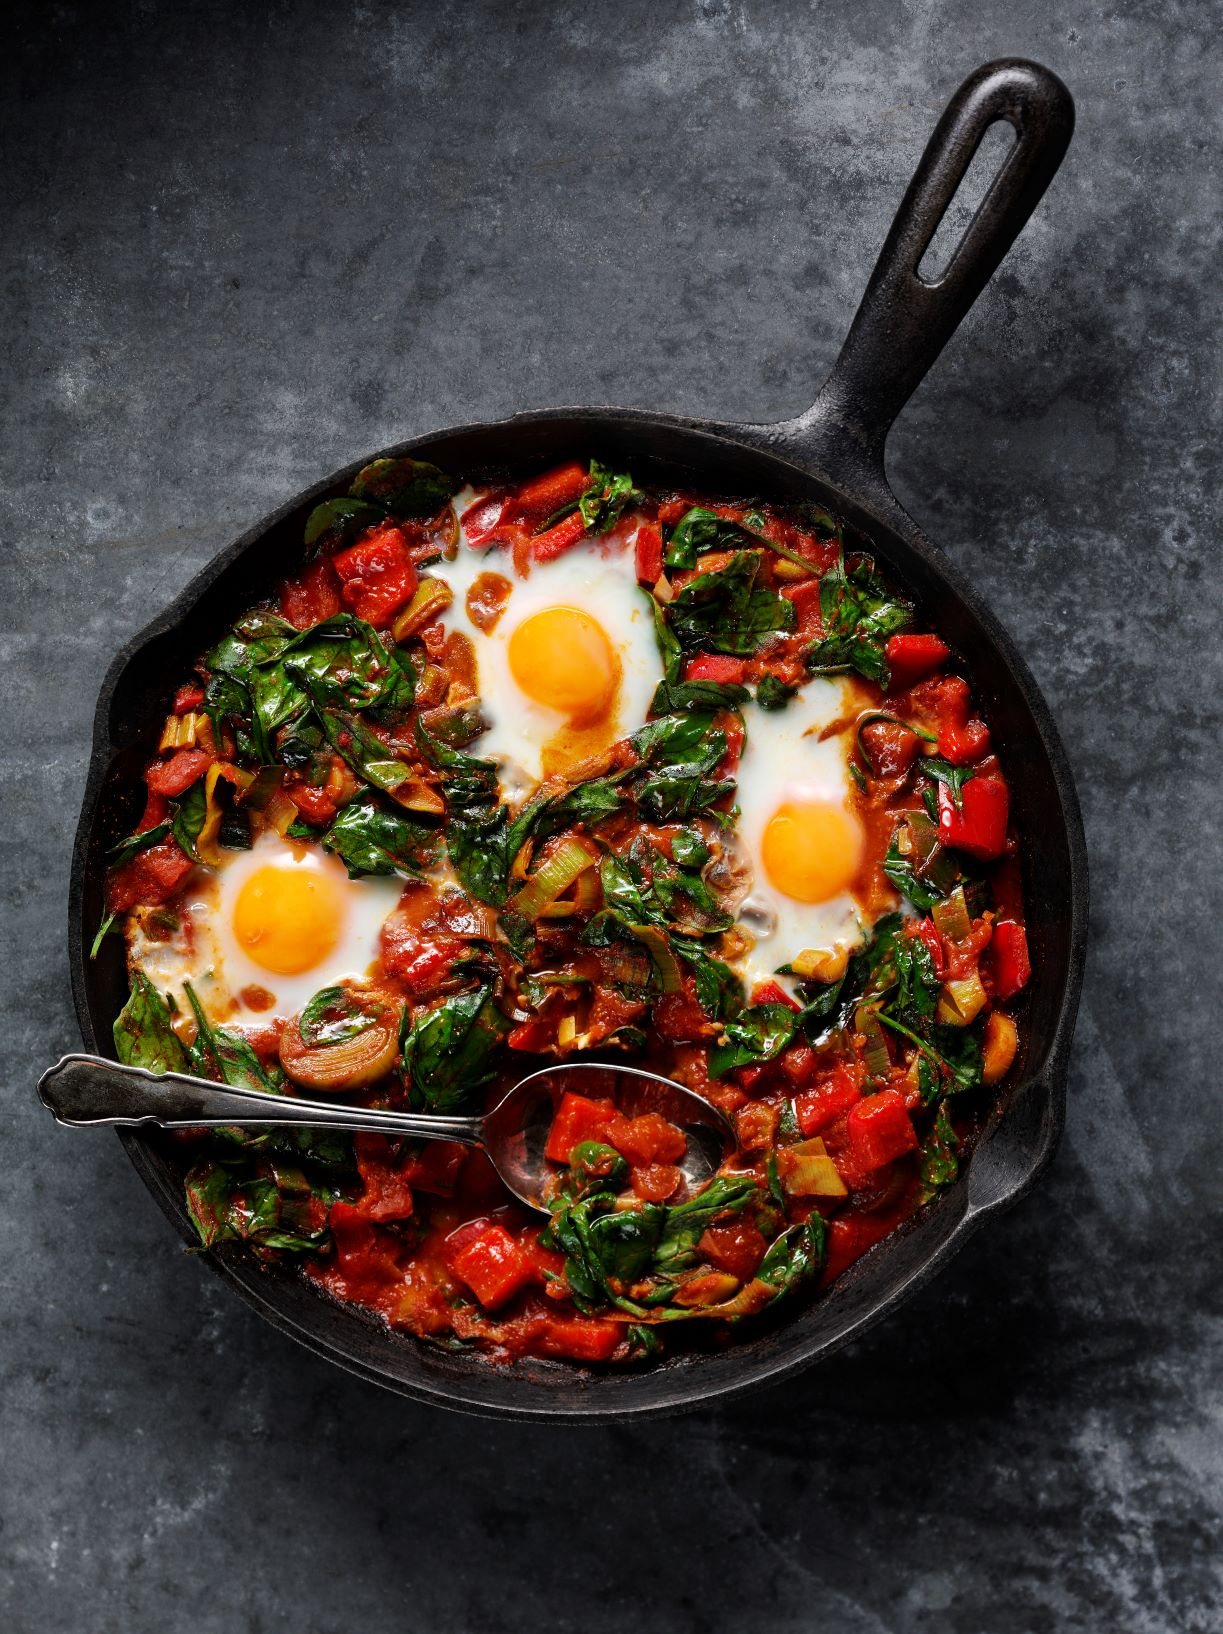 Breakfast Spinach Shakshuka